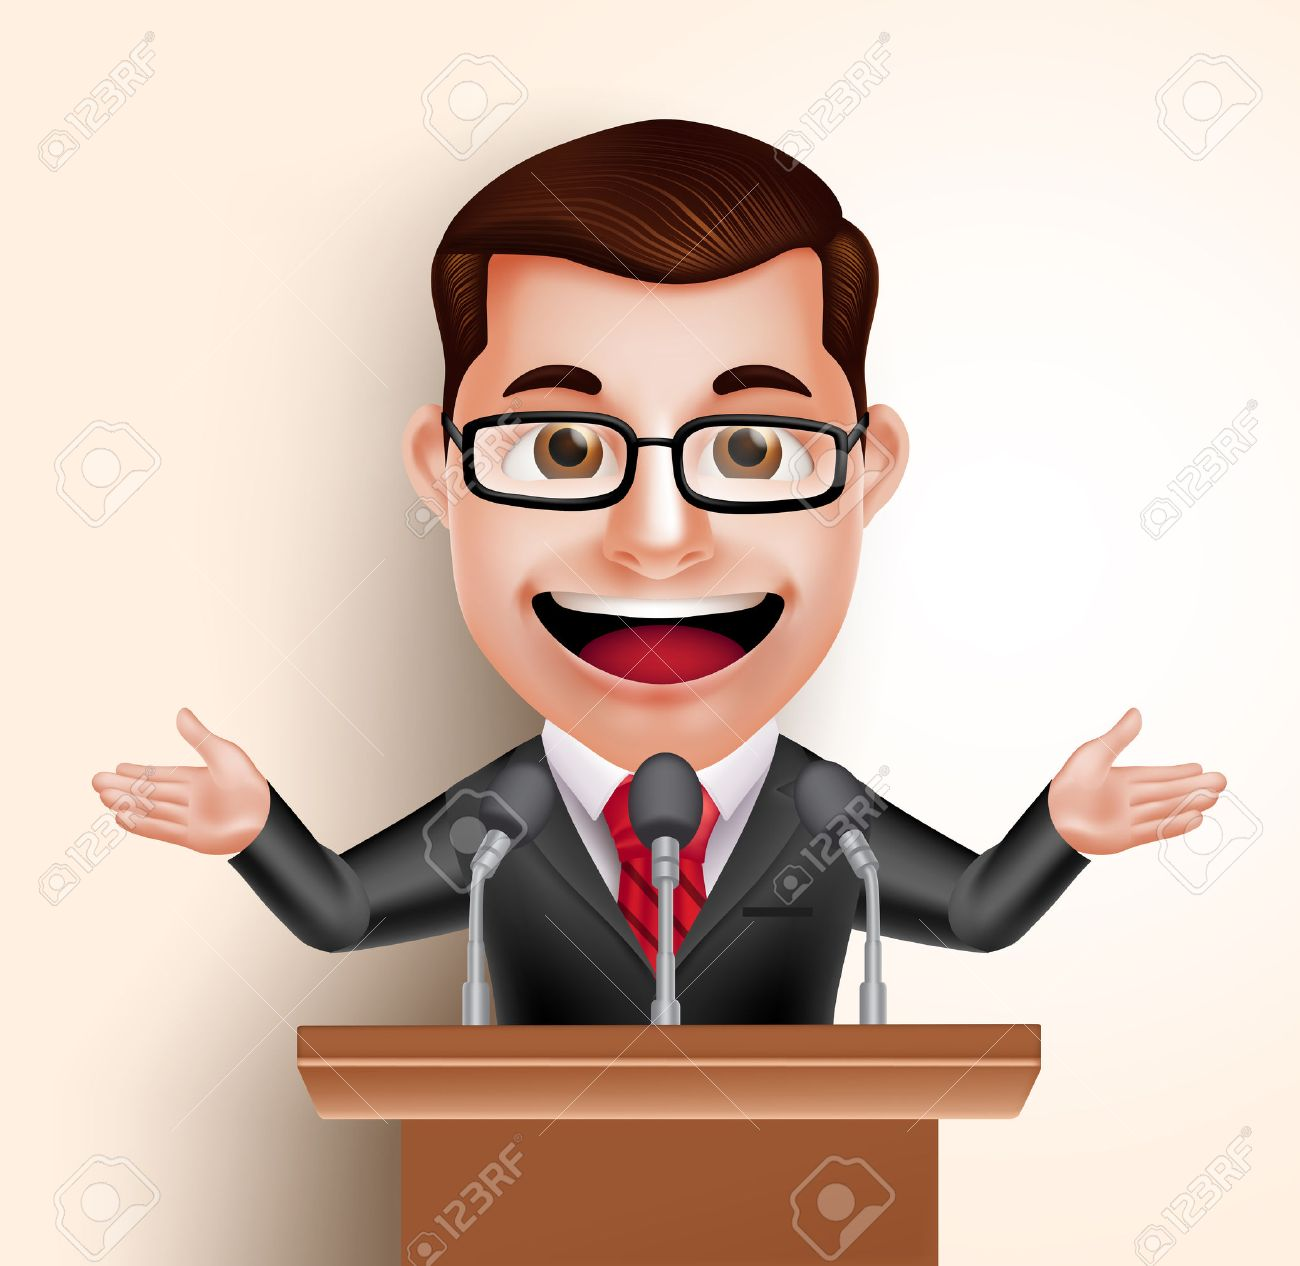 3D Vector Character Happy Politician Man or Speaker in Conference Speech. Vector Illustration - 49890059